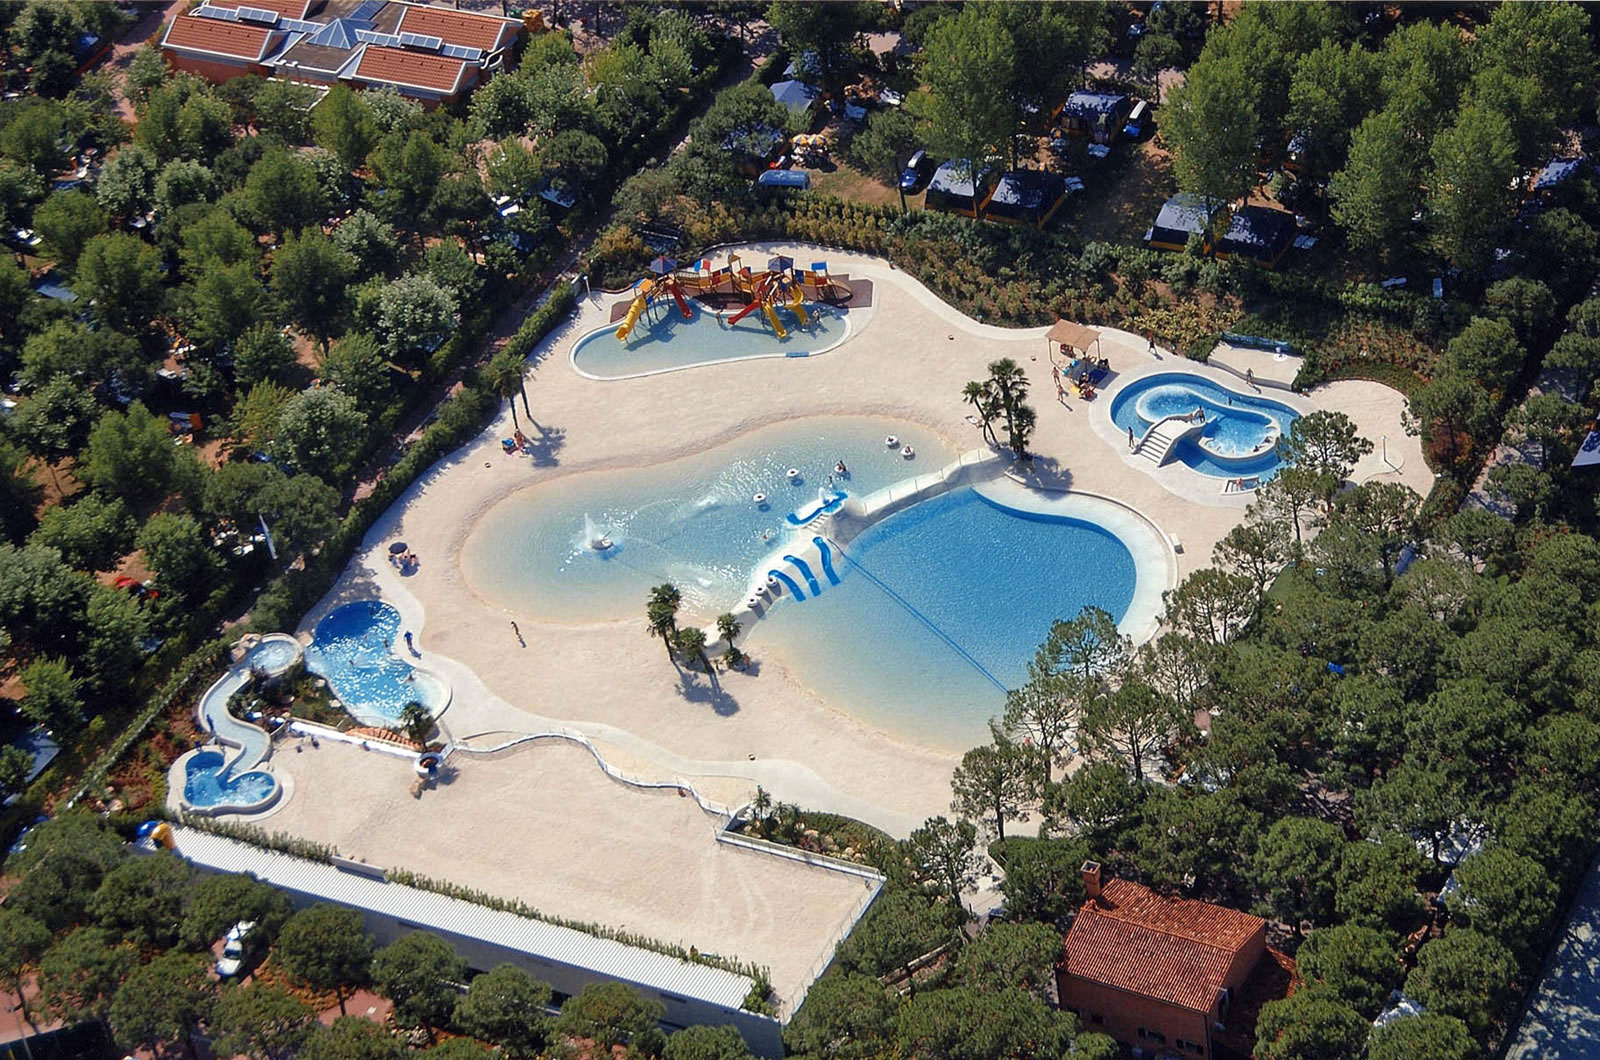 Water Park Laguna union lido park and resort cavallino venice